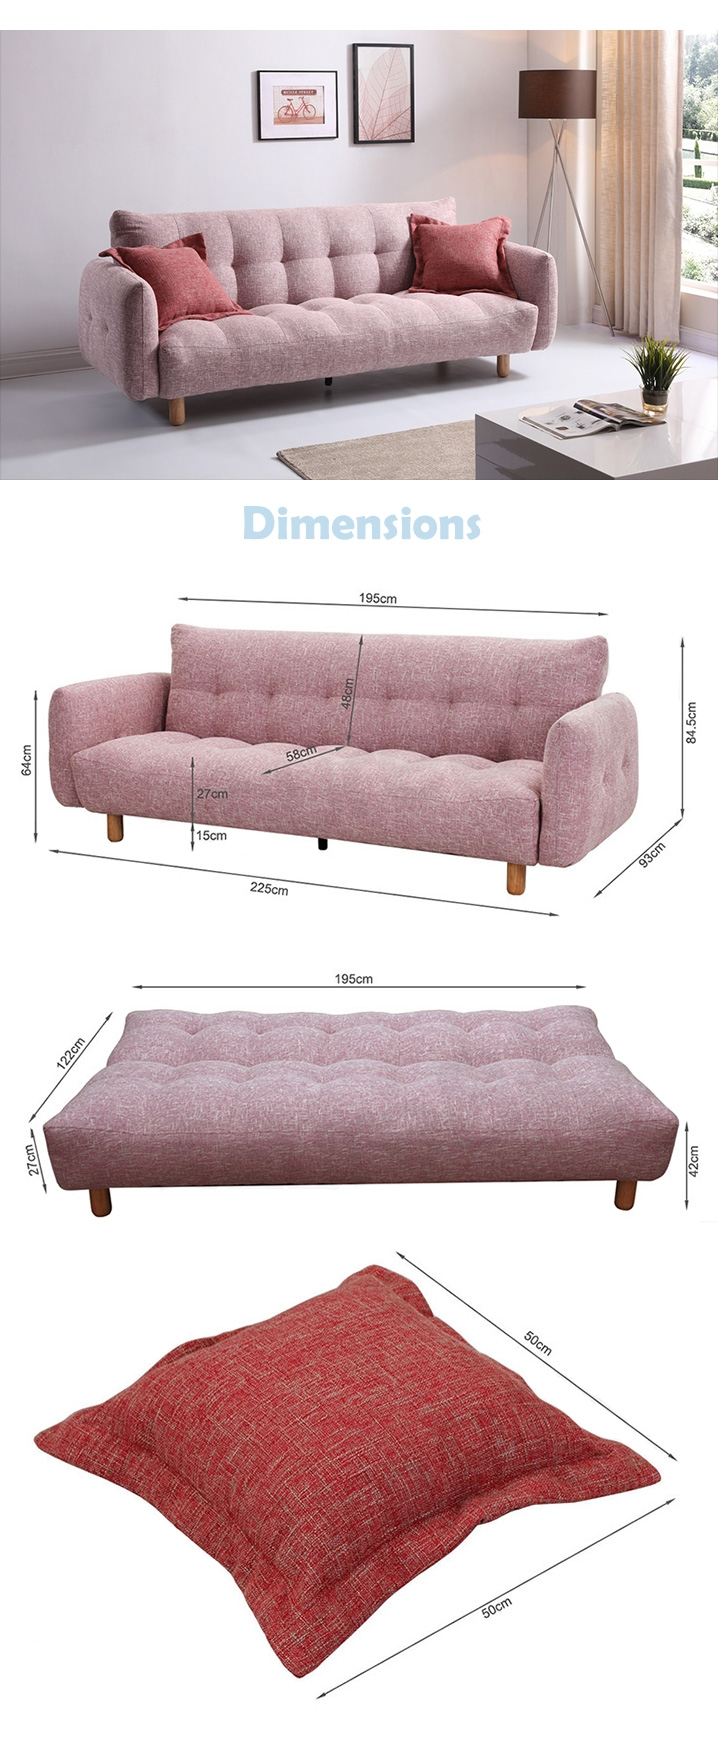 Sofa Beds Online Nz Colmar 3 Seater Sofa Bed